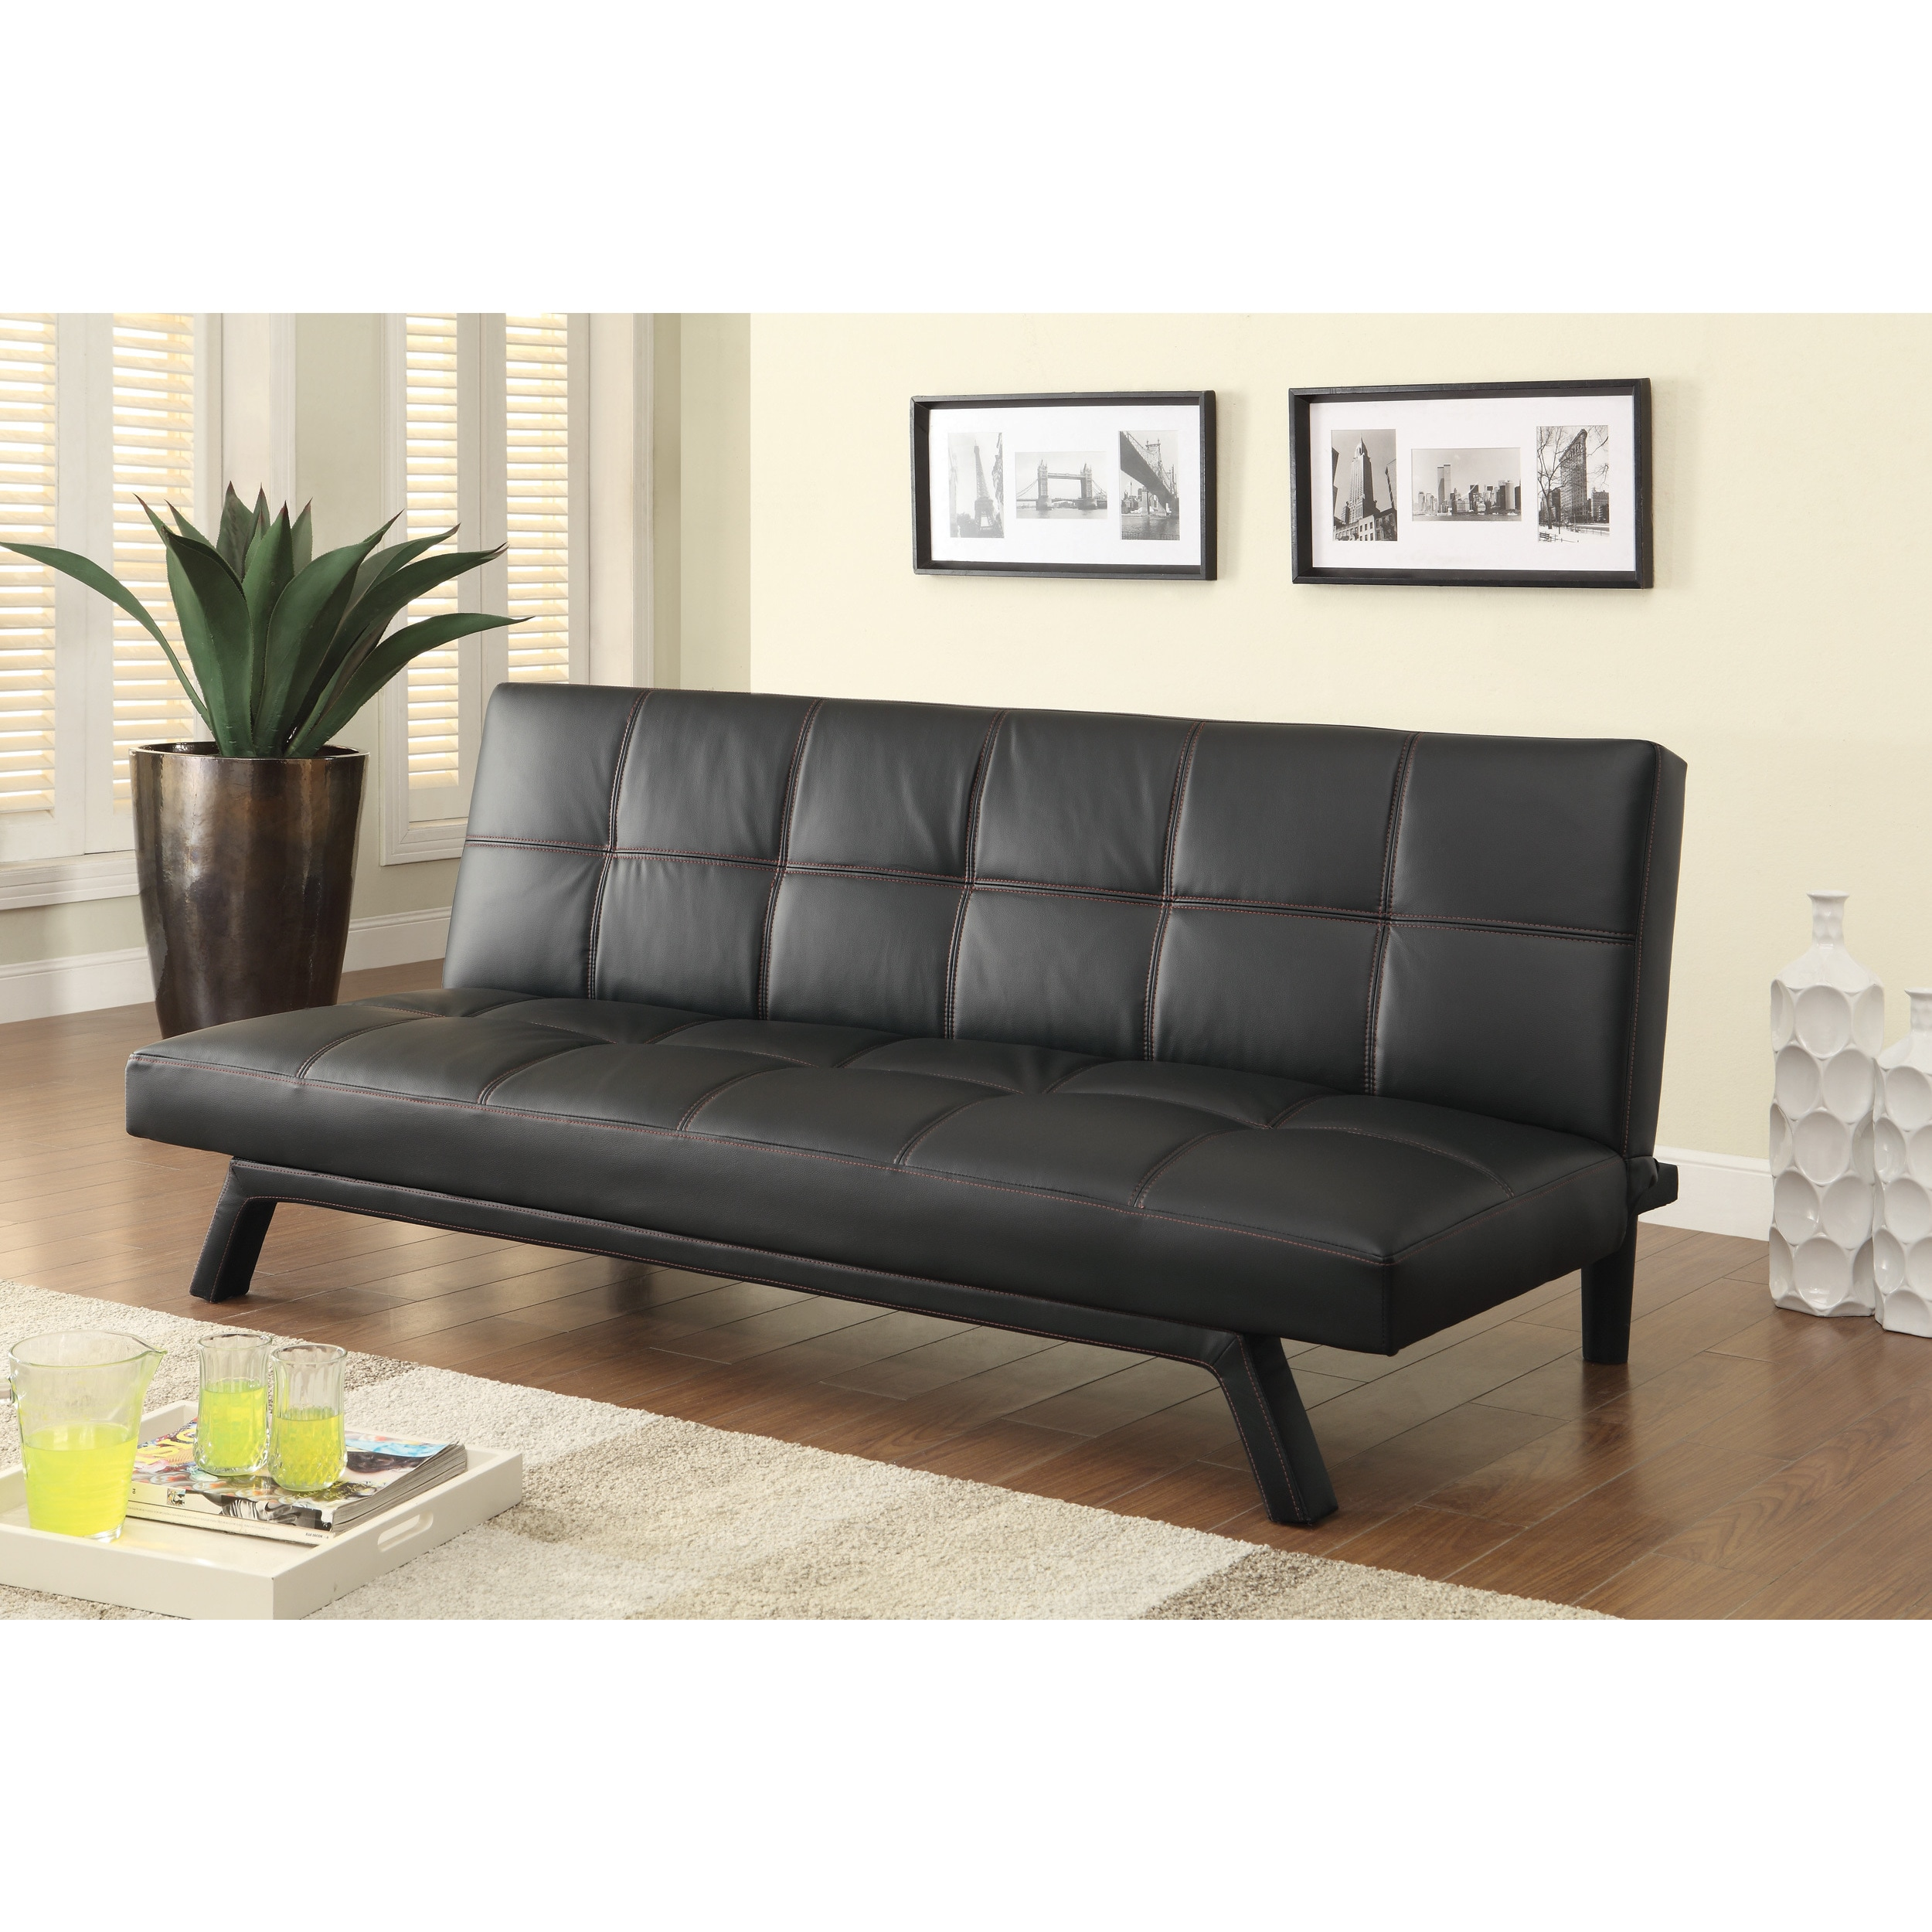 Coaster Company Black Red Leatherette Sofa Bed Free Shipping Today 12189646